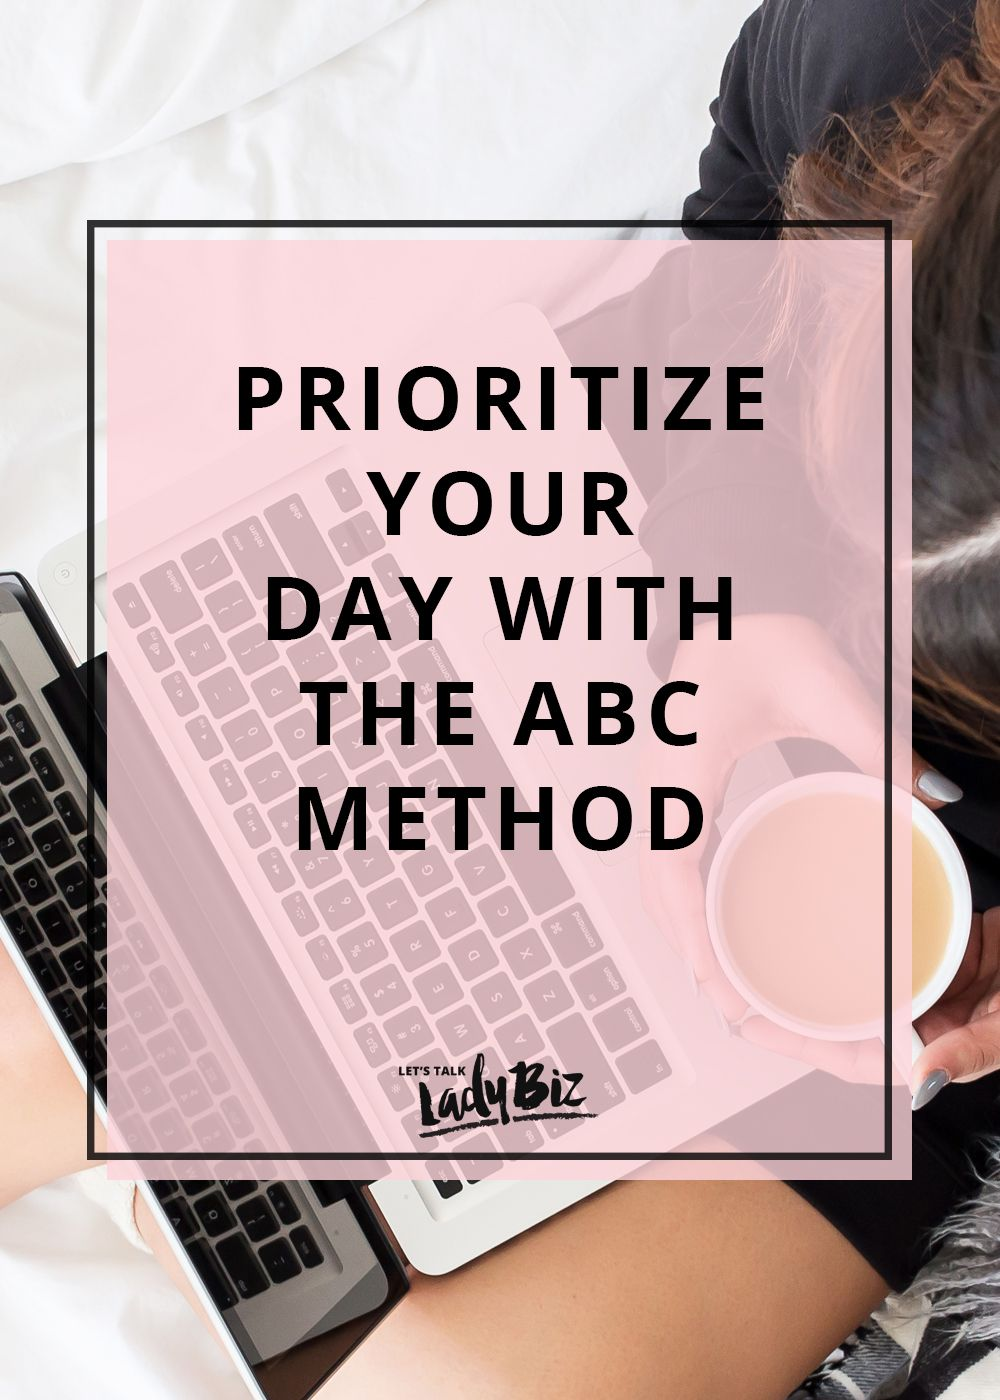 Prioritize Your Day With The ABC Method Time management